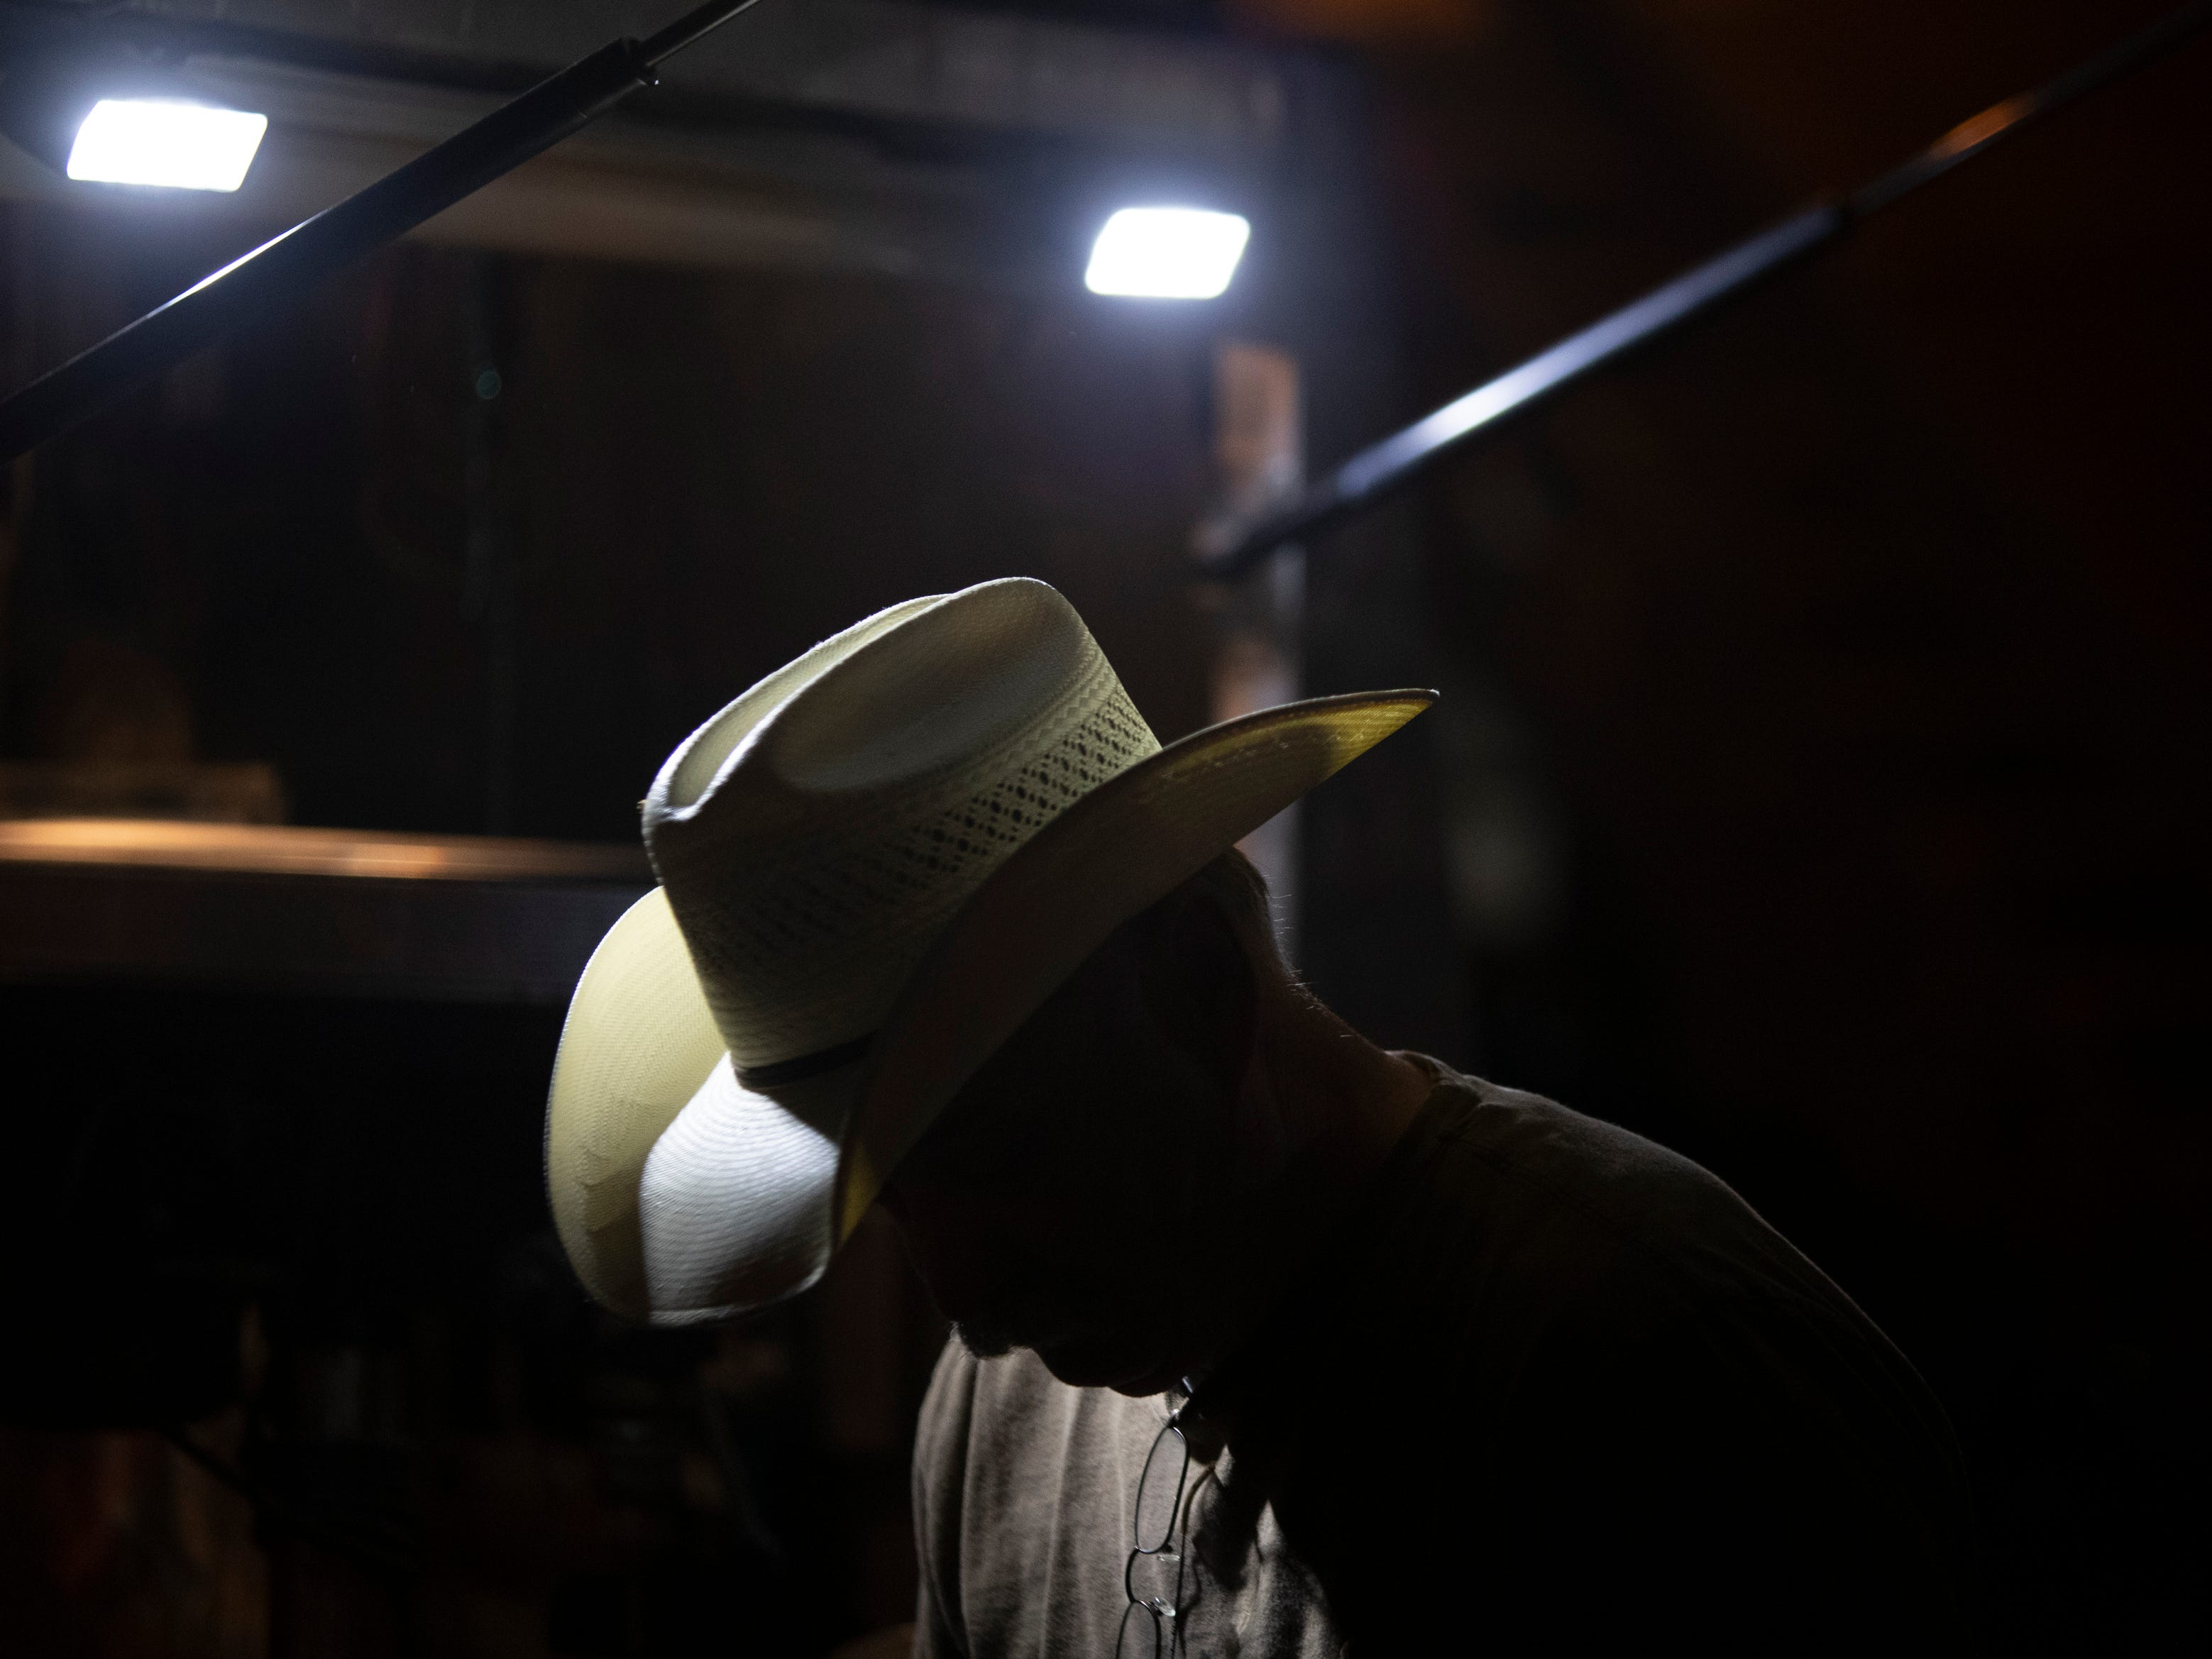 The light from his work truck reflects off the cowboy hat of blacksmith Steve Norman. Norman has been a blacksmith since 1970. April 23, 2019.